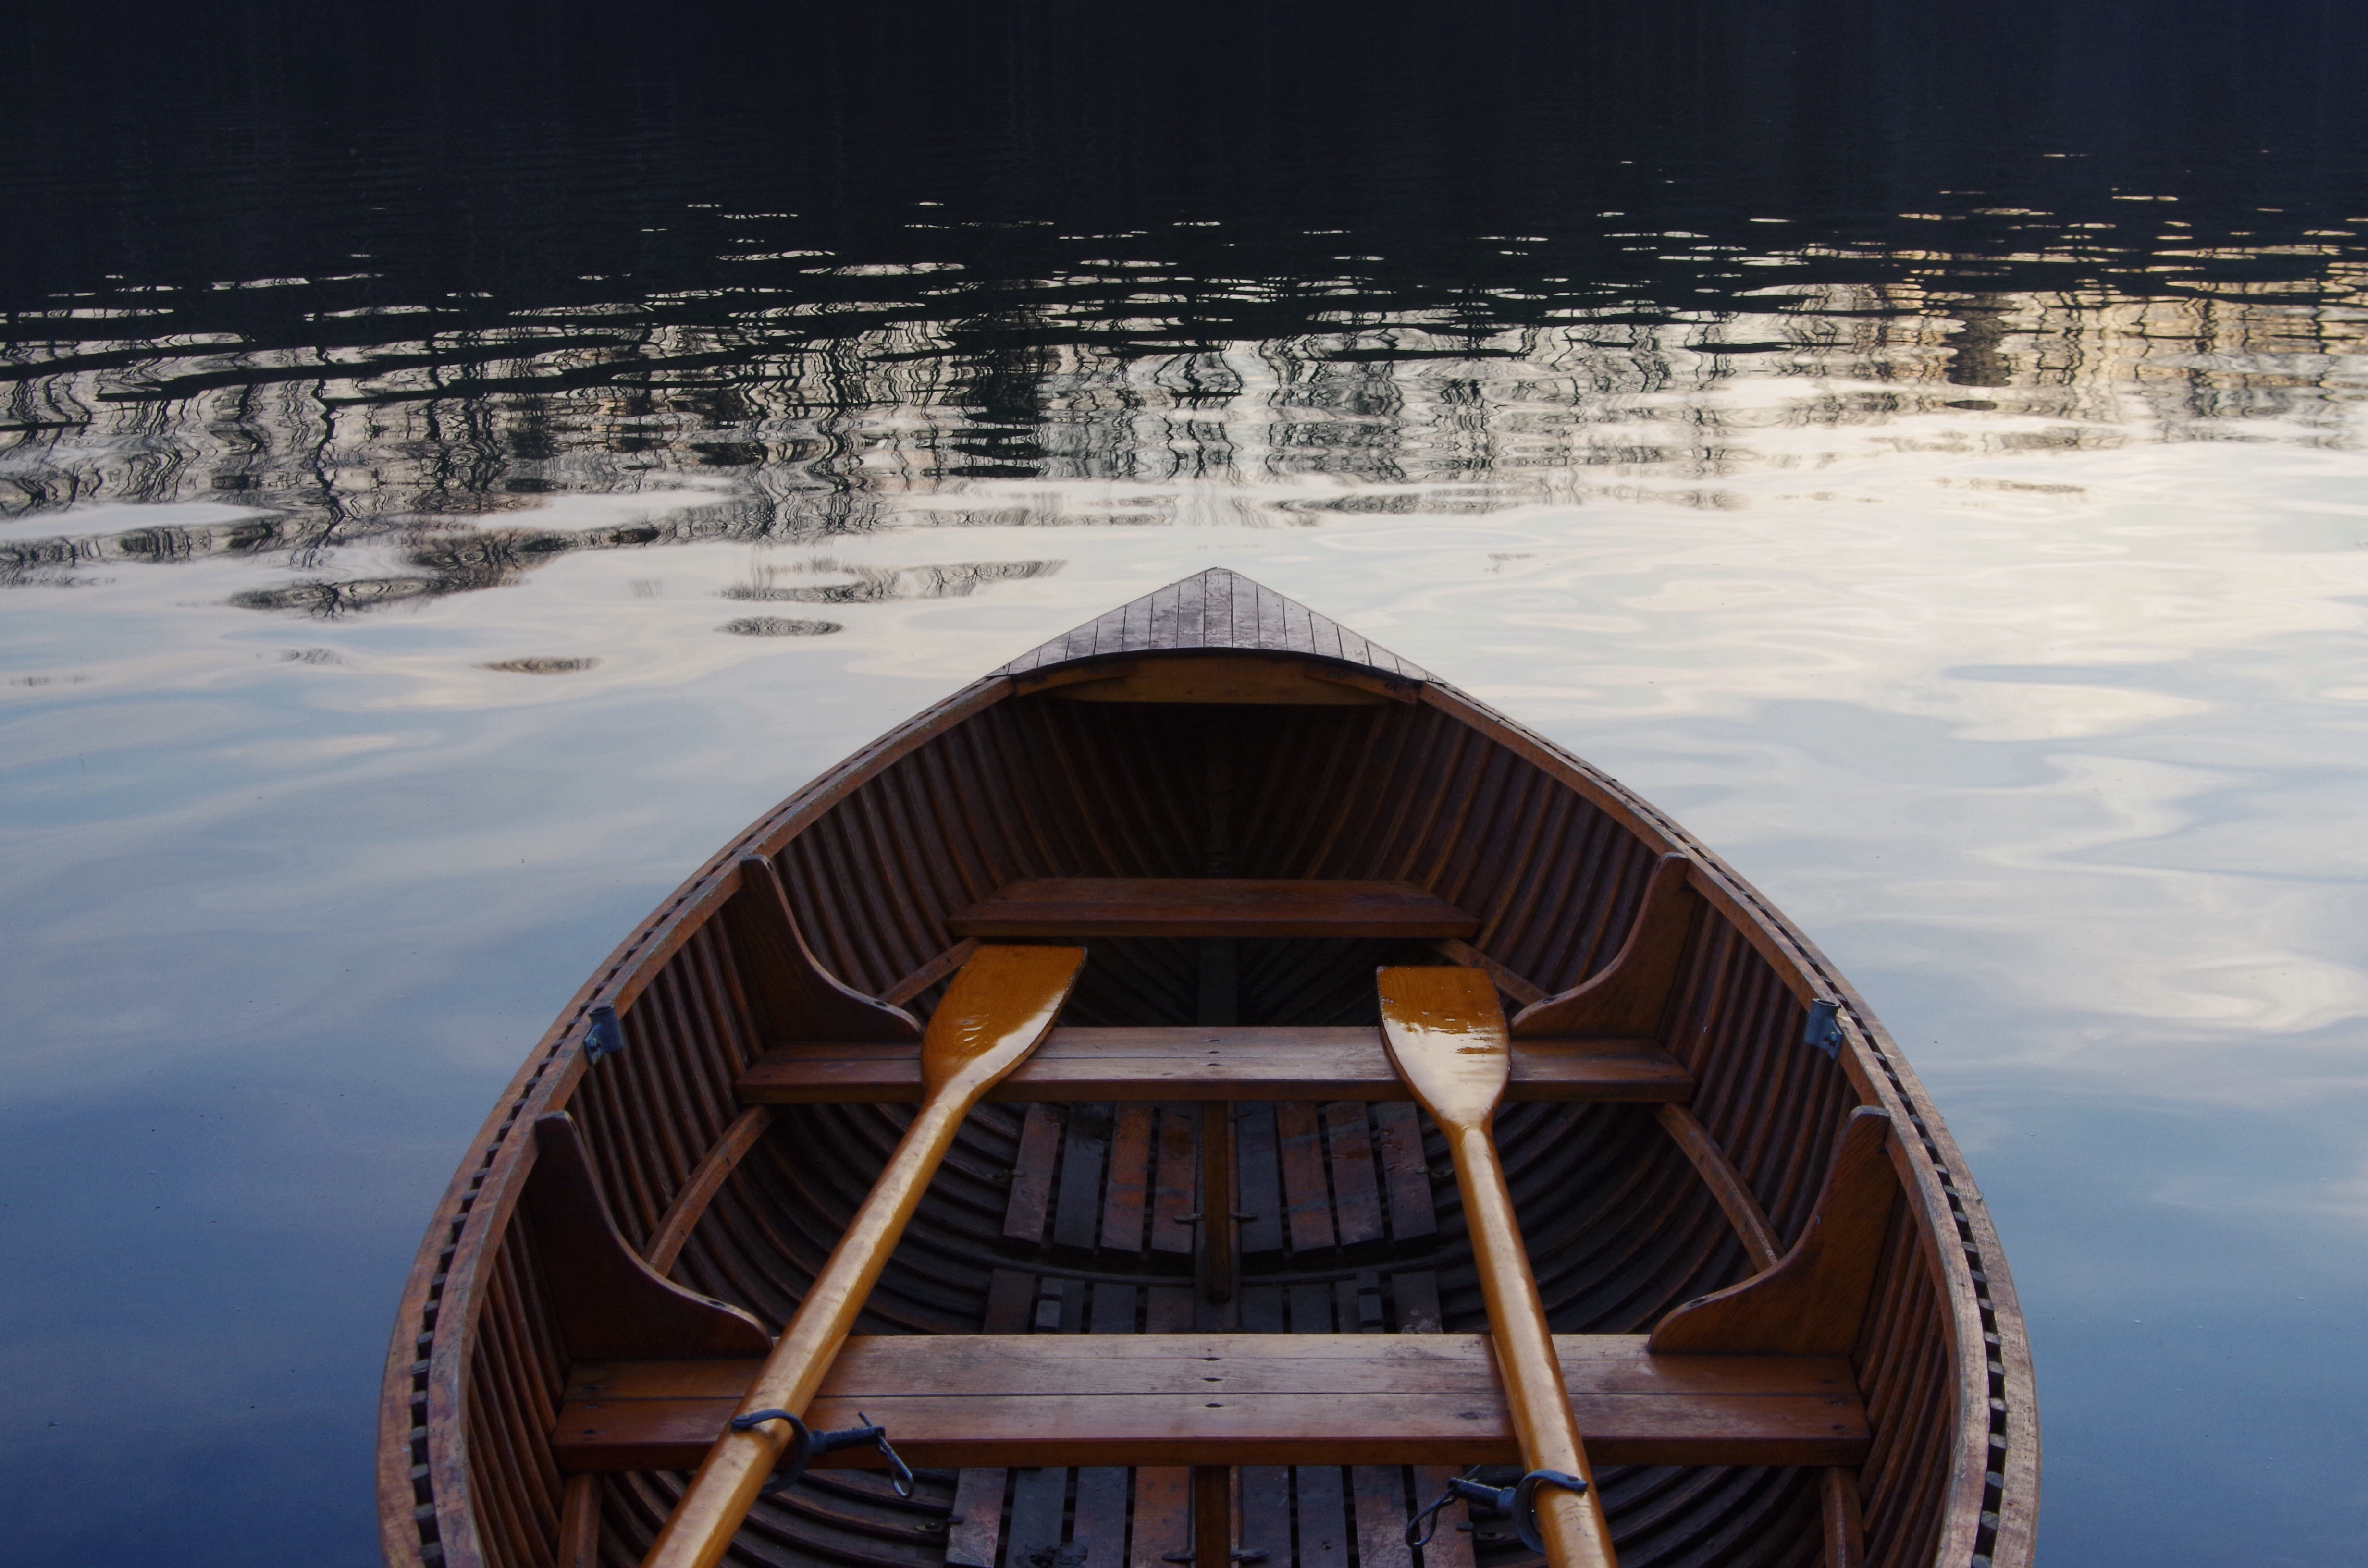 Wooden Boat, Activity, Boat, Boating, Flow, HQ Photo